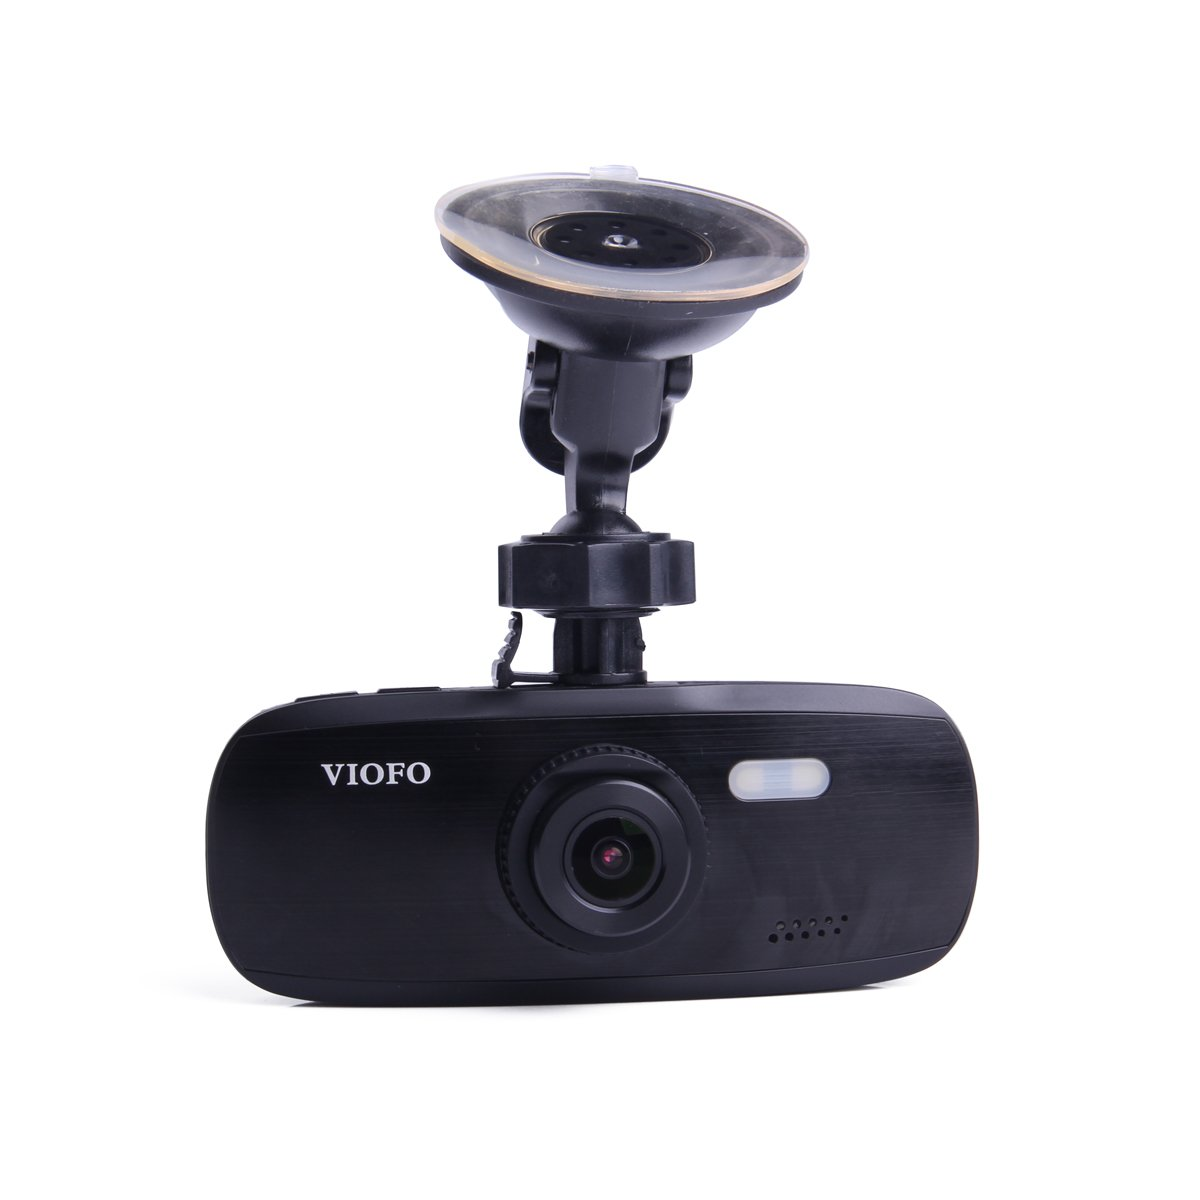 G1W-S Car Dash Camera with GPS   Full 1080P HD Video & Audio Recording Support GPS Logger G-Sensor Capabilities   NT96650 + Sony IMX323